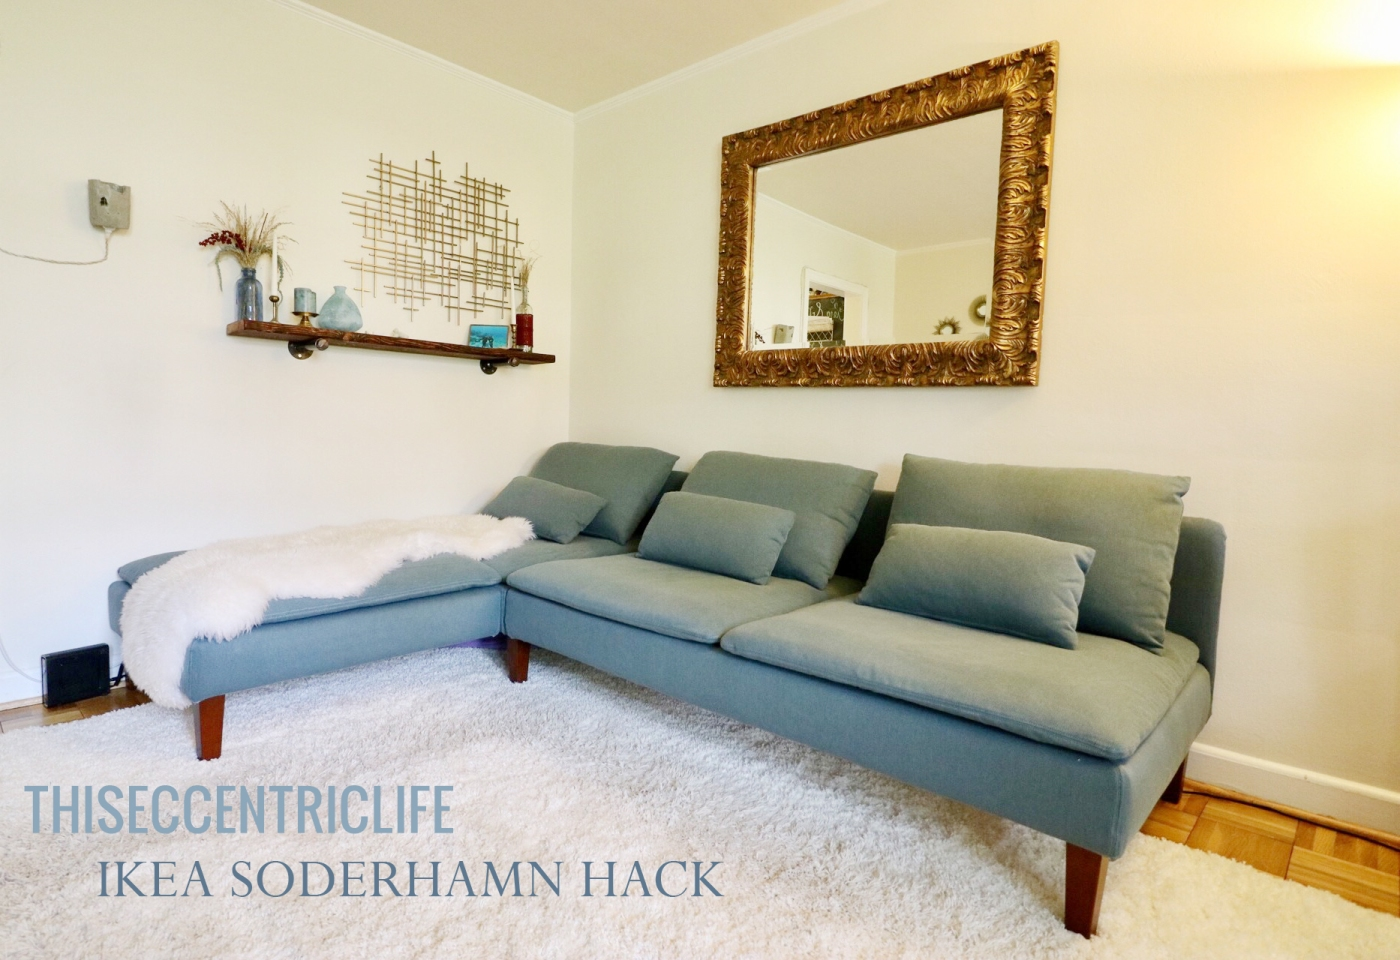 Hacking The Soderhamn Ikea Sofa This Eccentric Life